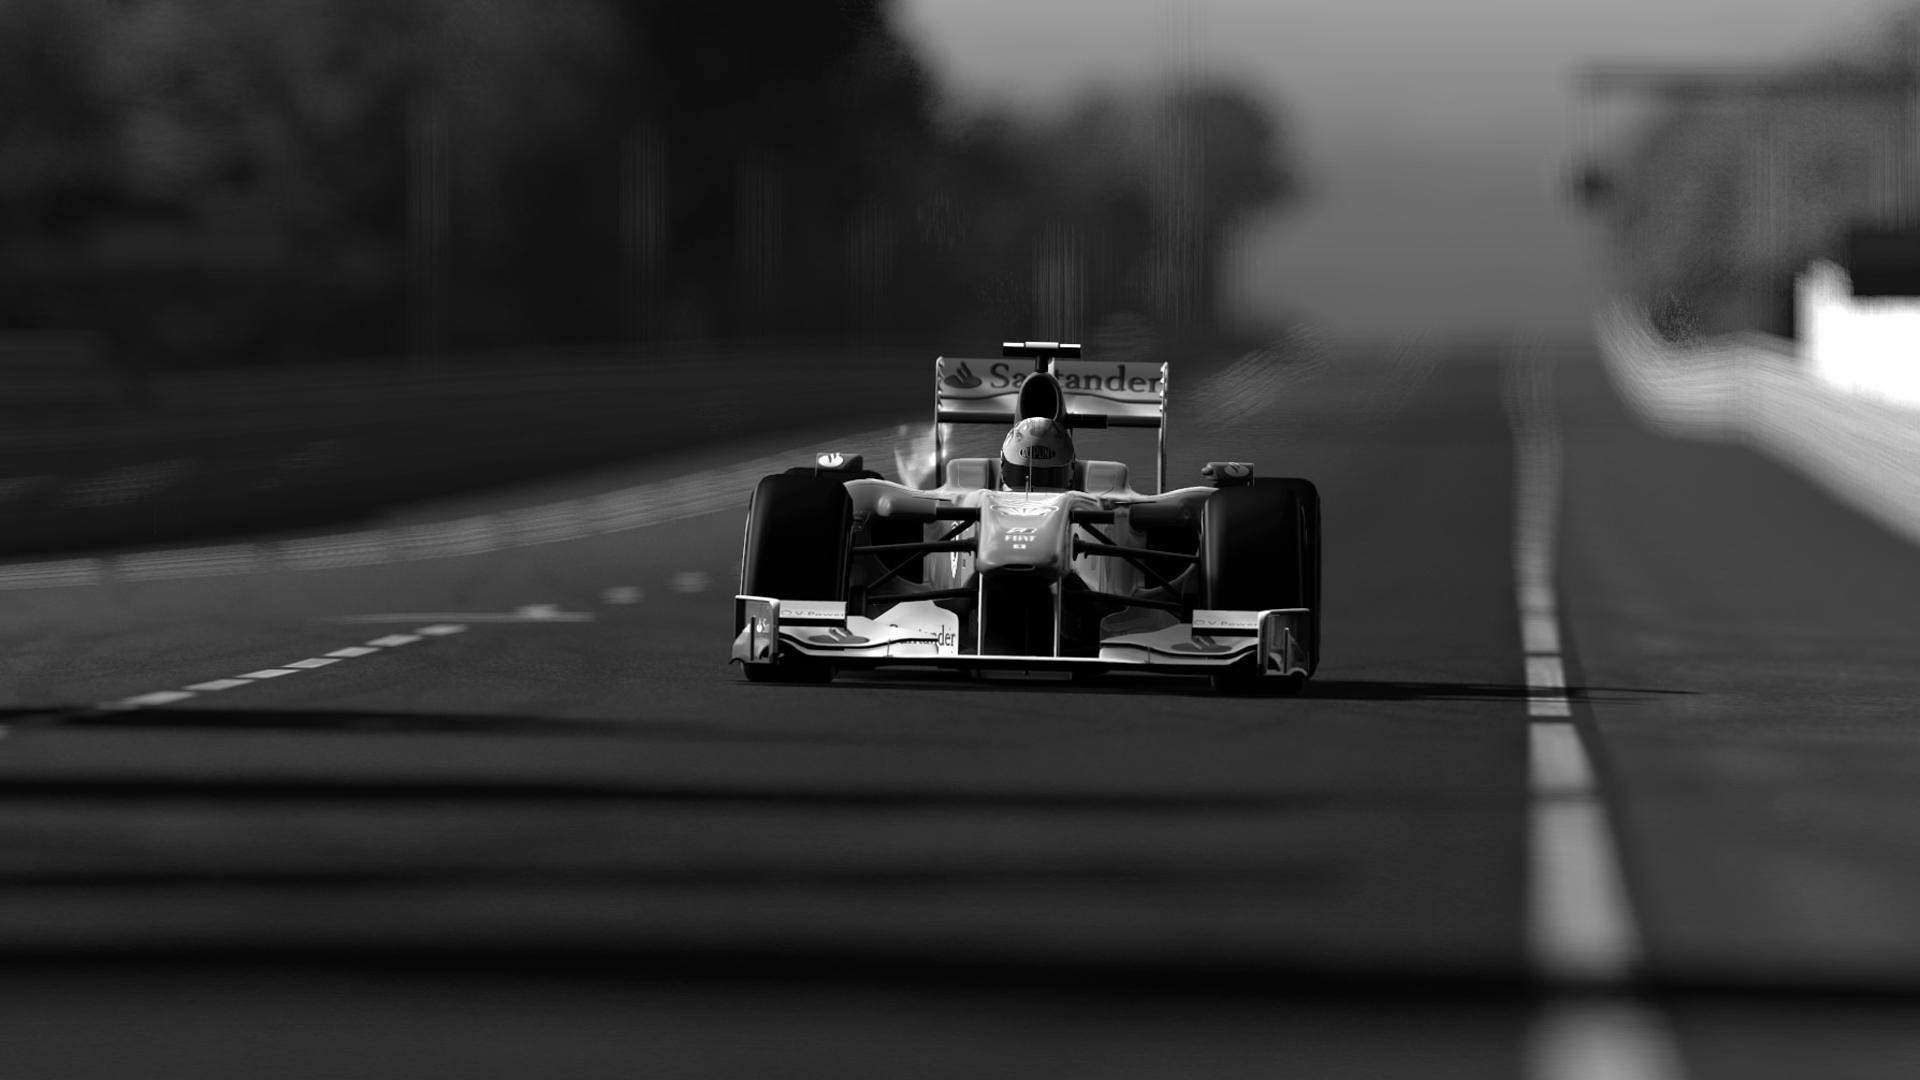 1920x1080 2018 24x42 Inch,F 1,Formula 1,Black And White Photo,Poster Hd Home Wall  Decor Custom Art Print Silk Wallpaper Unframed 212 From Gdst1350, $9.05 |  Dhgate.Com